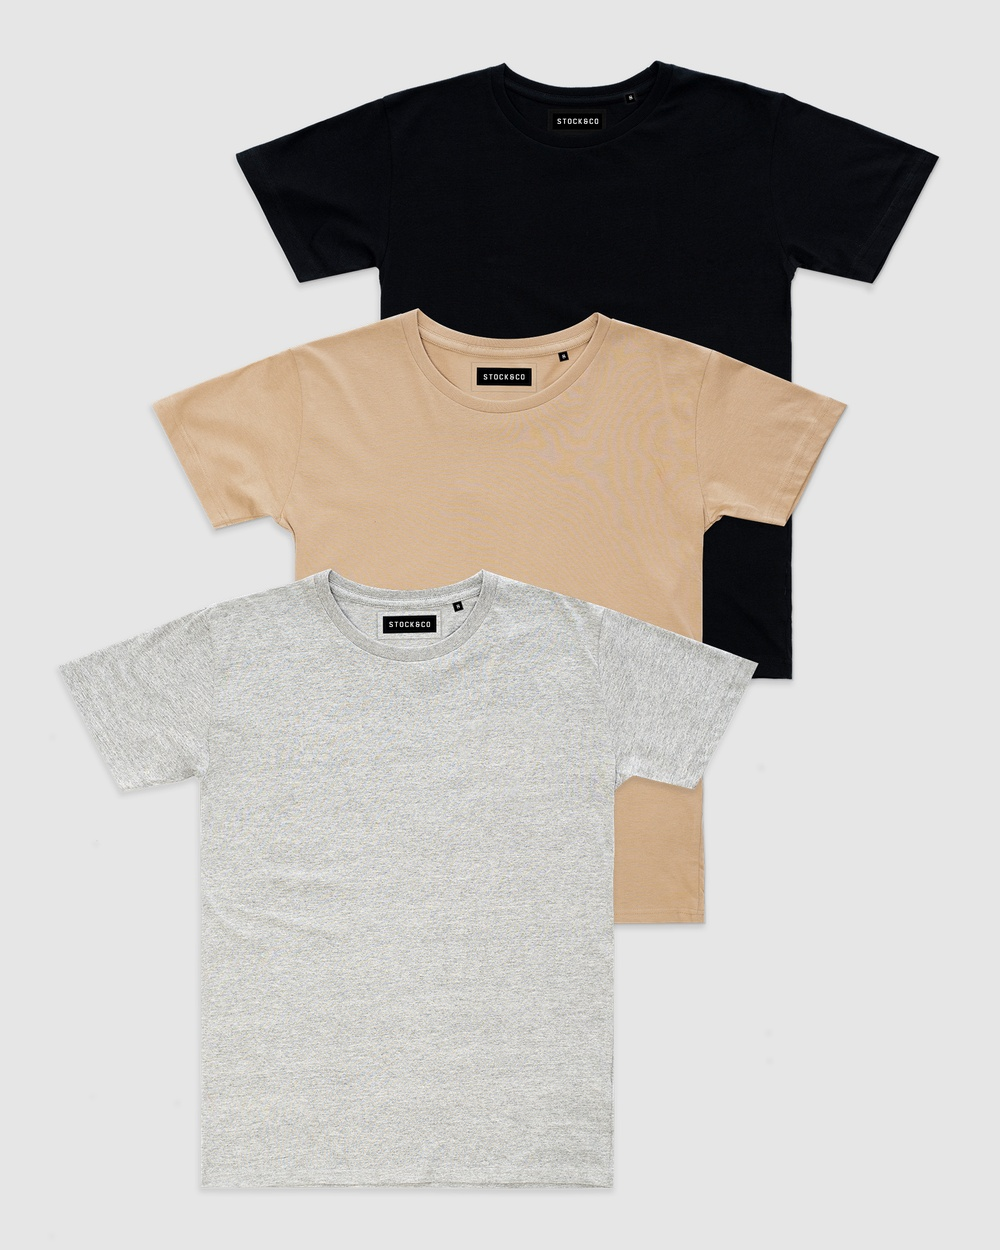 Stock & Co. - 3 Pack Stock Tee   Teens - T-Shirts & Singlets (MULTI) 3-Pack Stock Tee - Teens